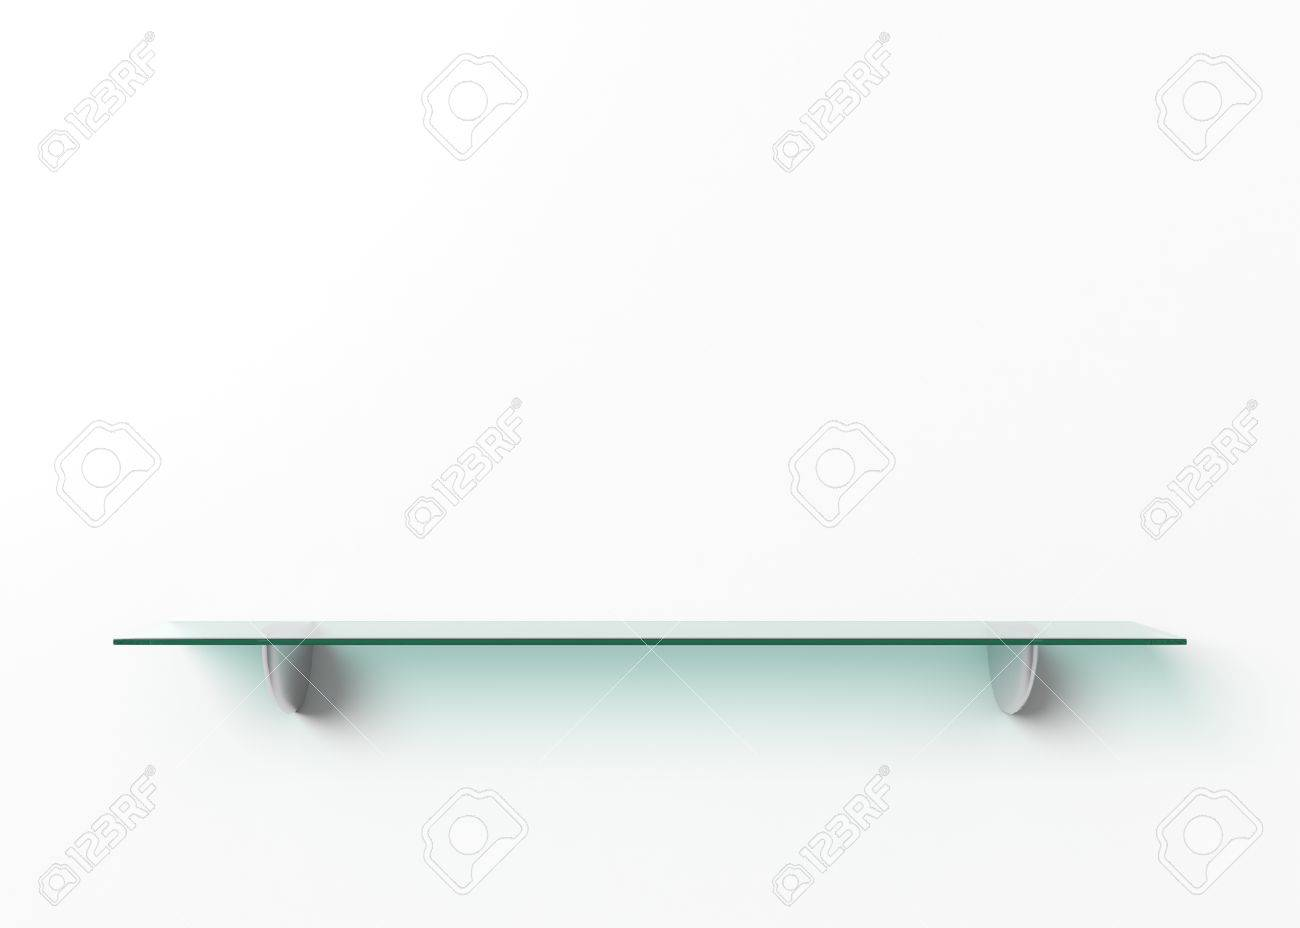 White Shelf Hanging On A Wall With Light And Shadows Blank Template